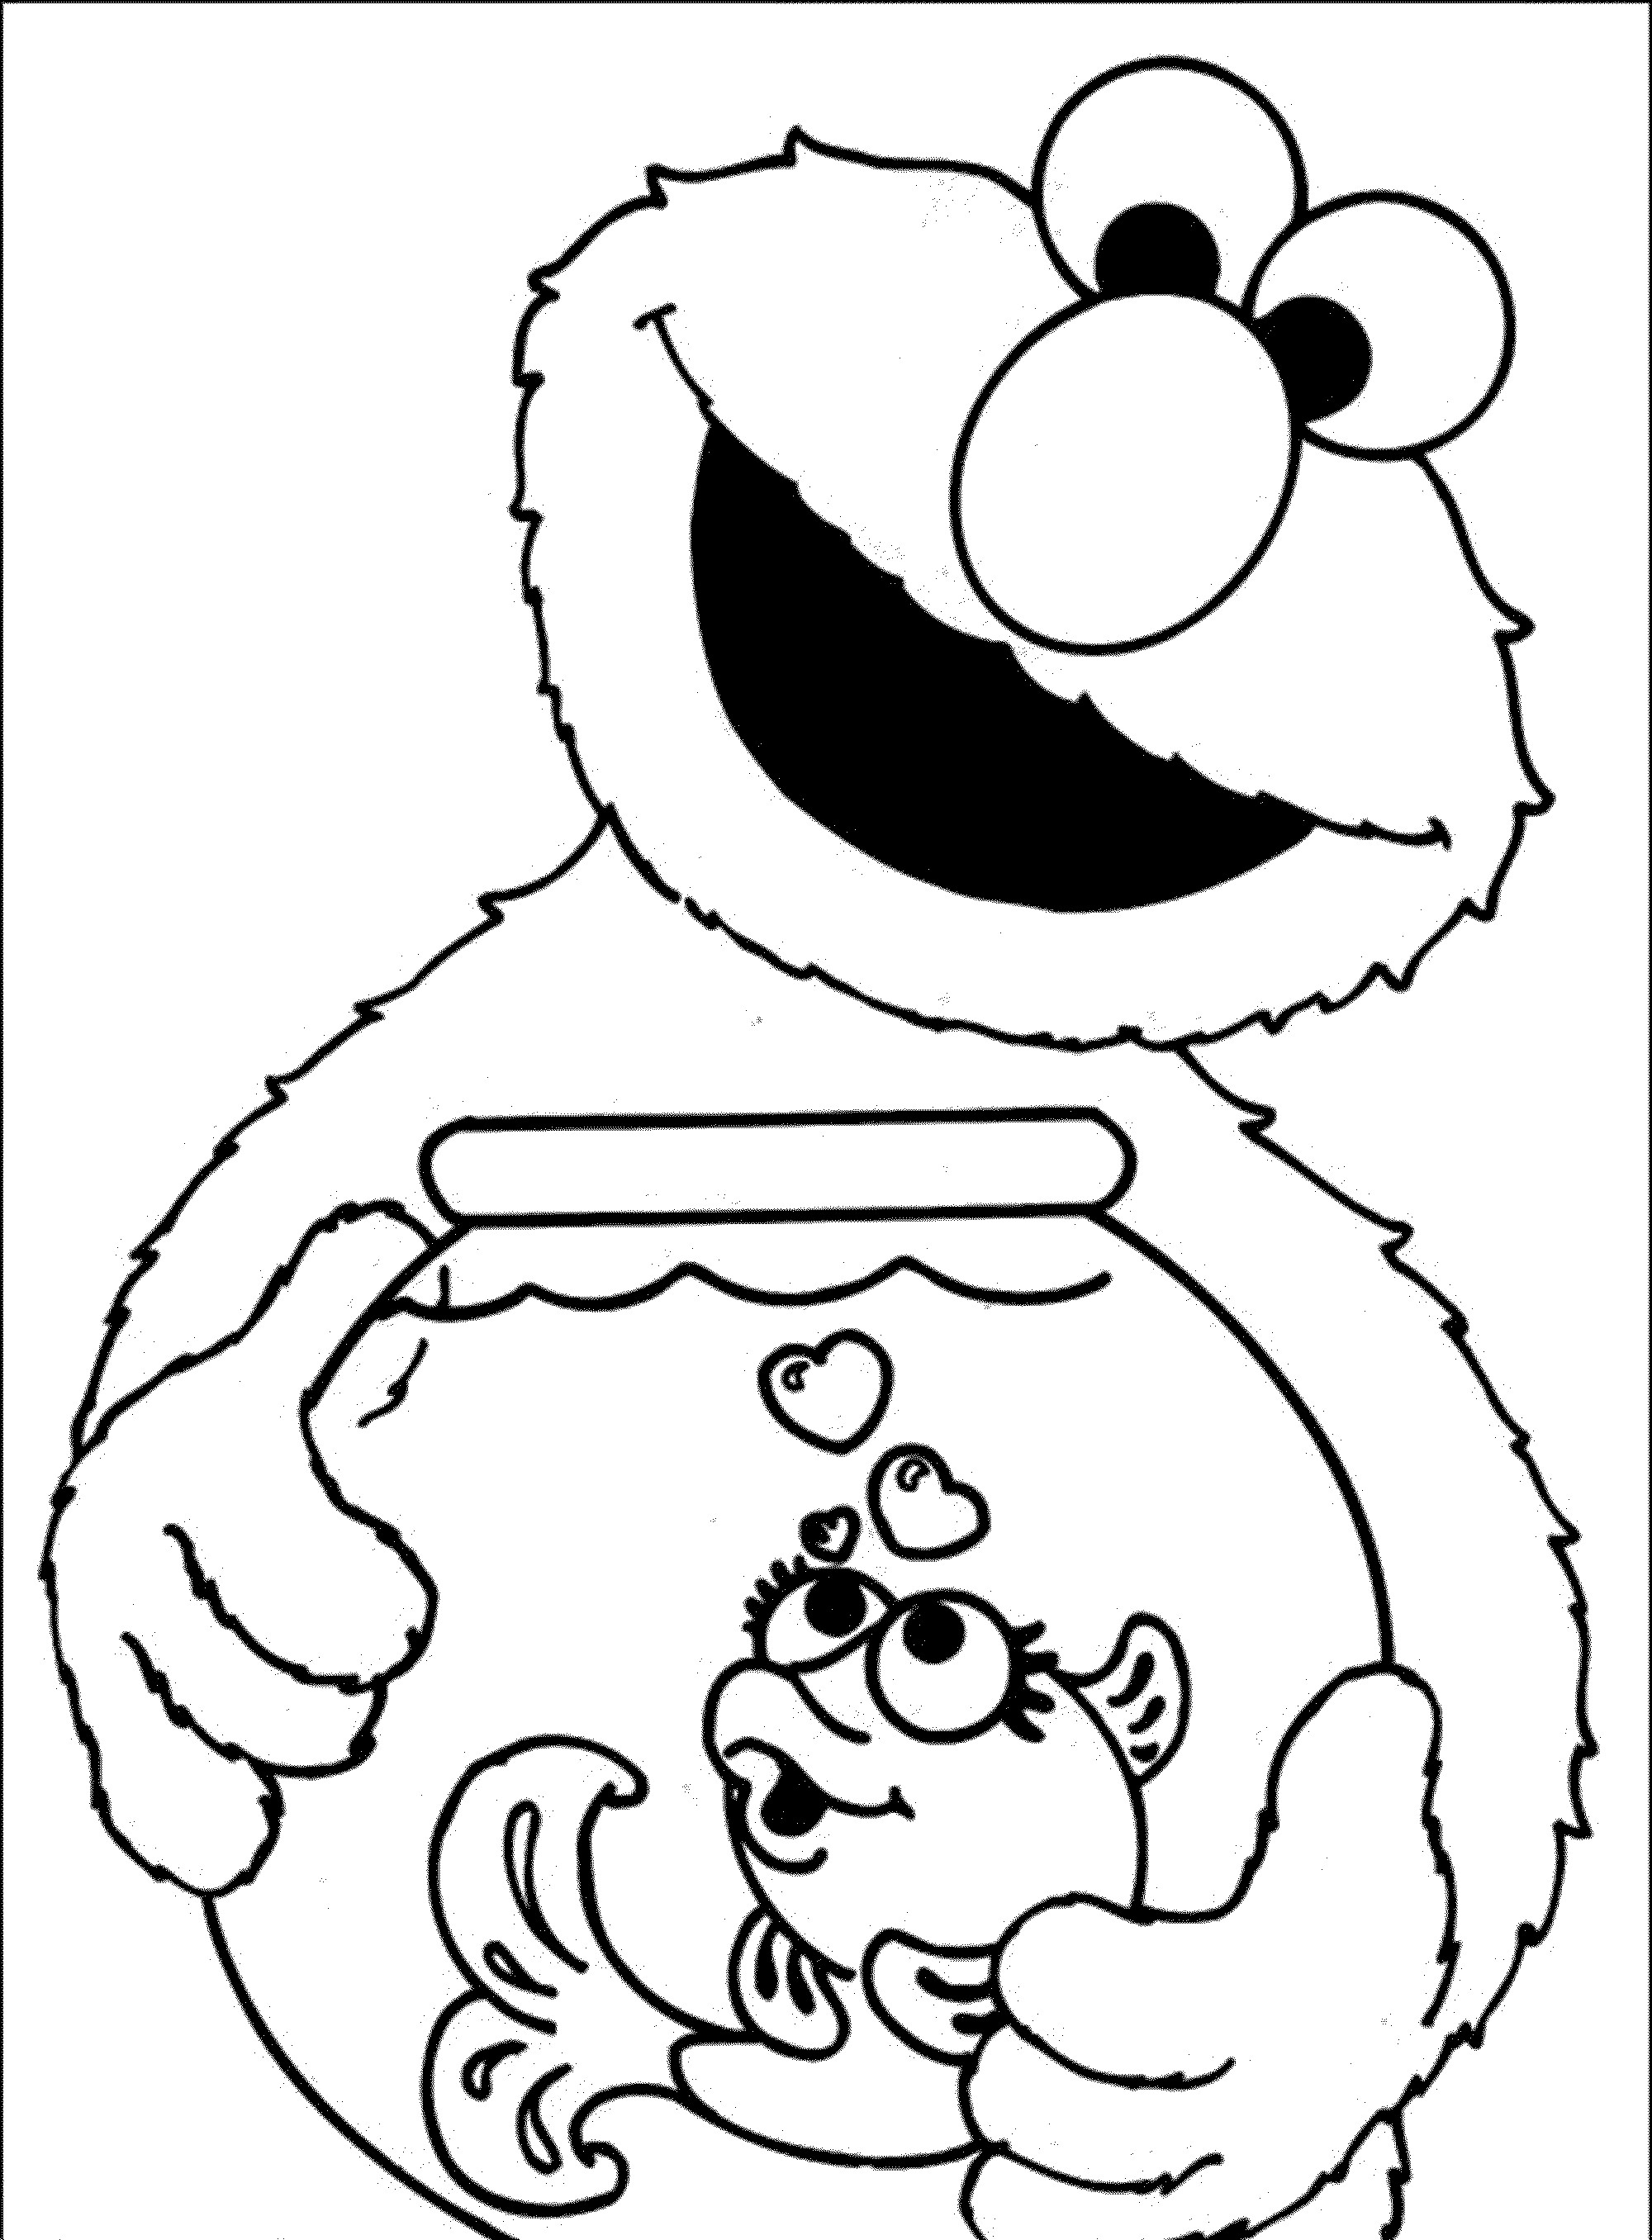 Best ideas about Print Free Coloring Pages . Save or Pin Elmo Coloring Pages Printable Free Coloring Home Now.